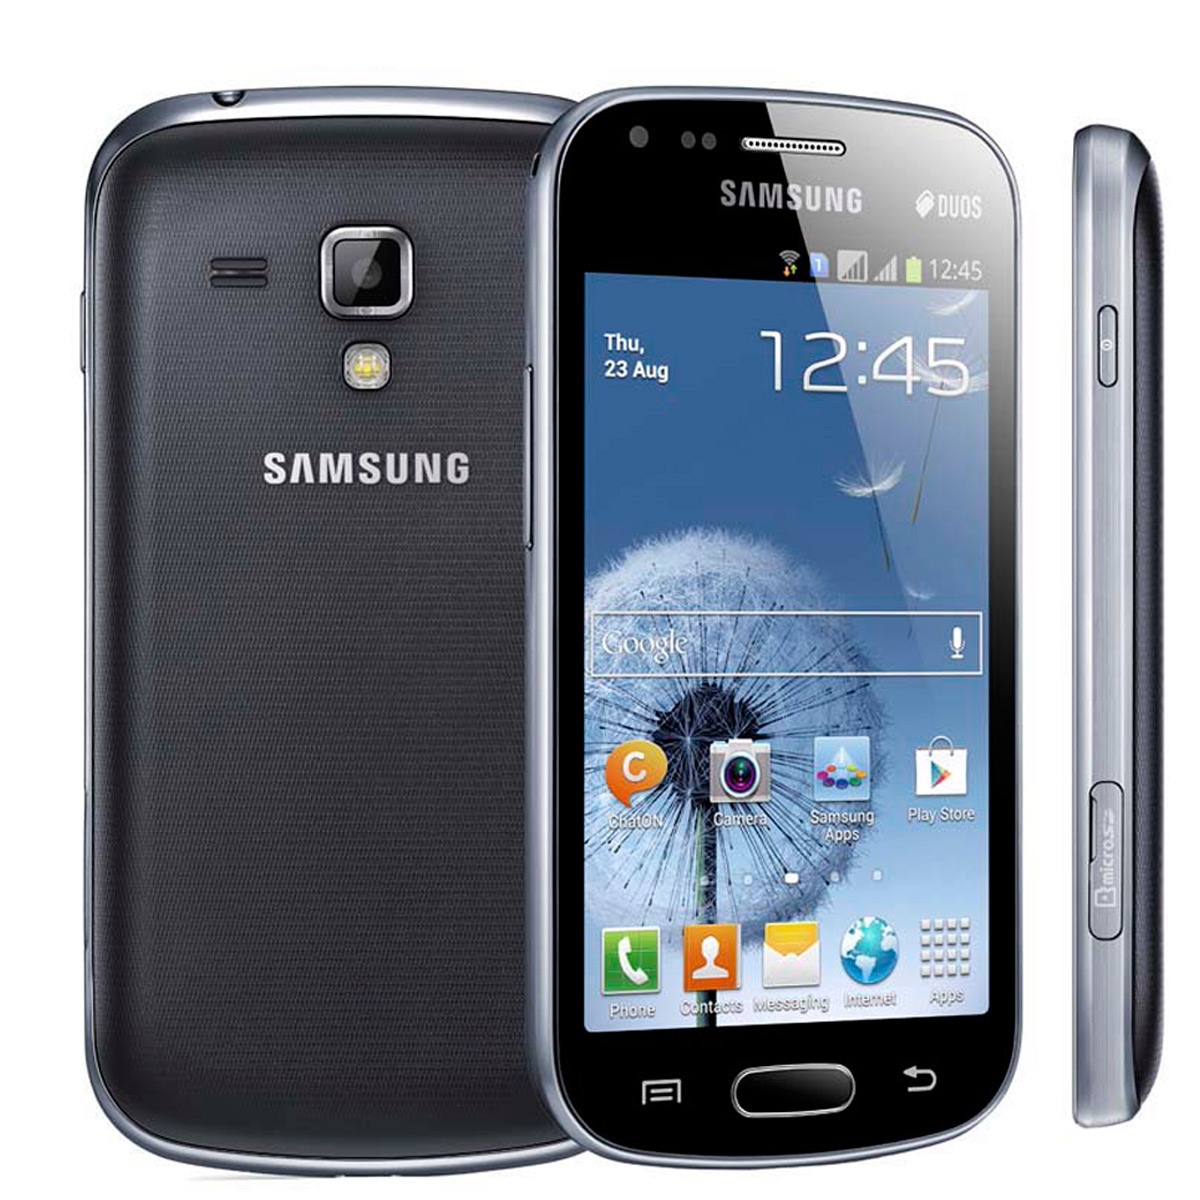 samsung galaxy s duos gt s7562l dual sim android phone unlocked mint condition used cell. Black Bedroom Furniture Sets. Home Design Ideas